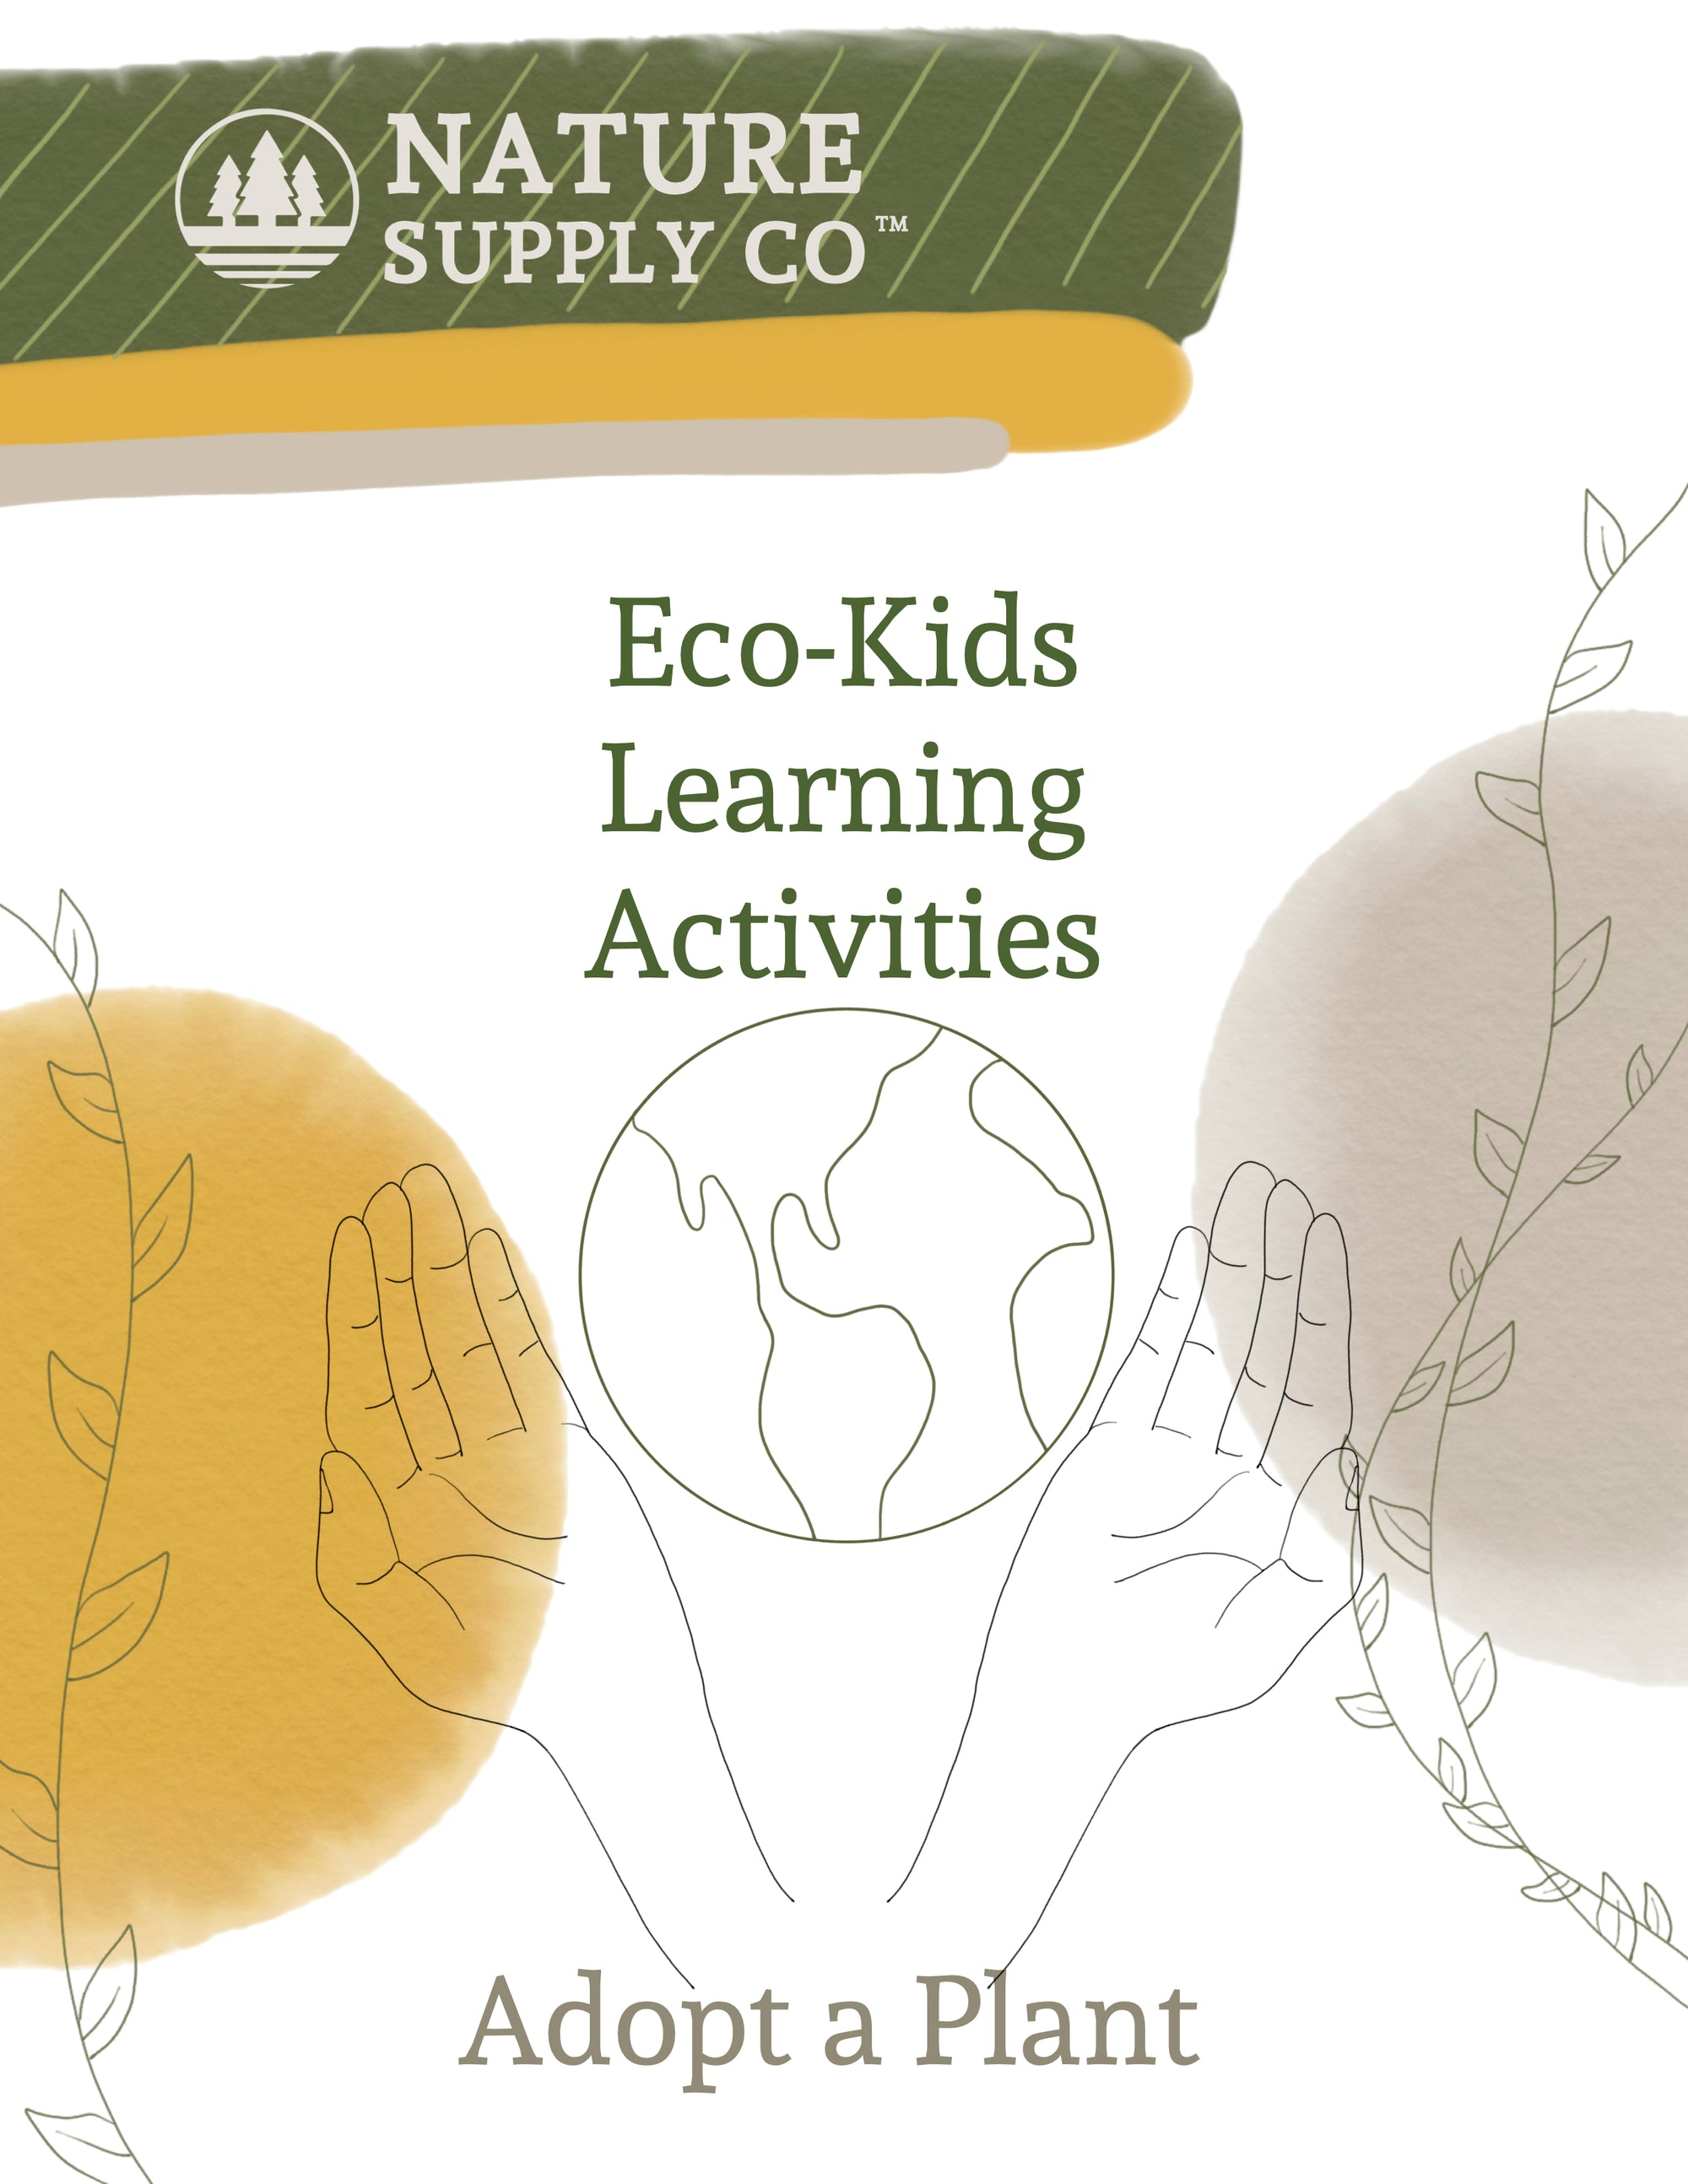 Eco-Kids Learning: Adopt a Plant